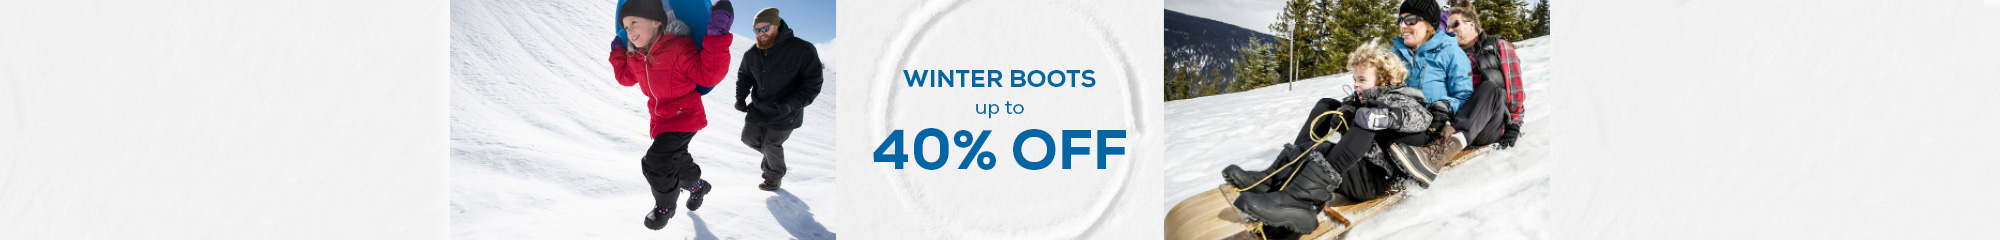 Winter Boots Up to 40% Off